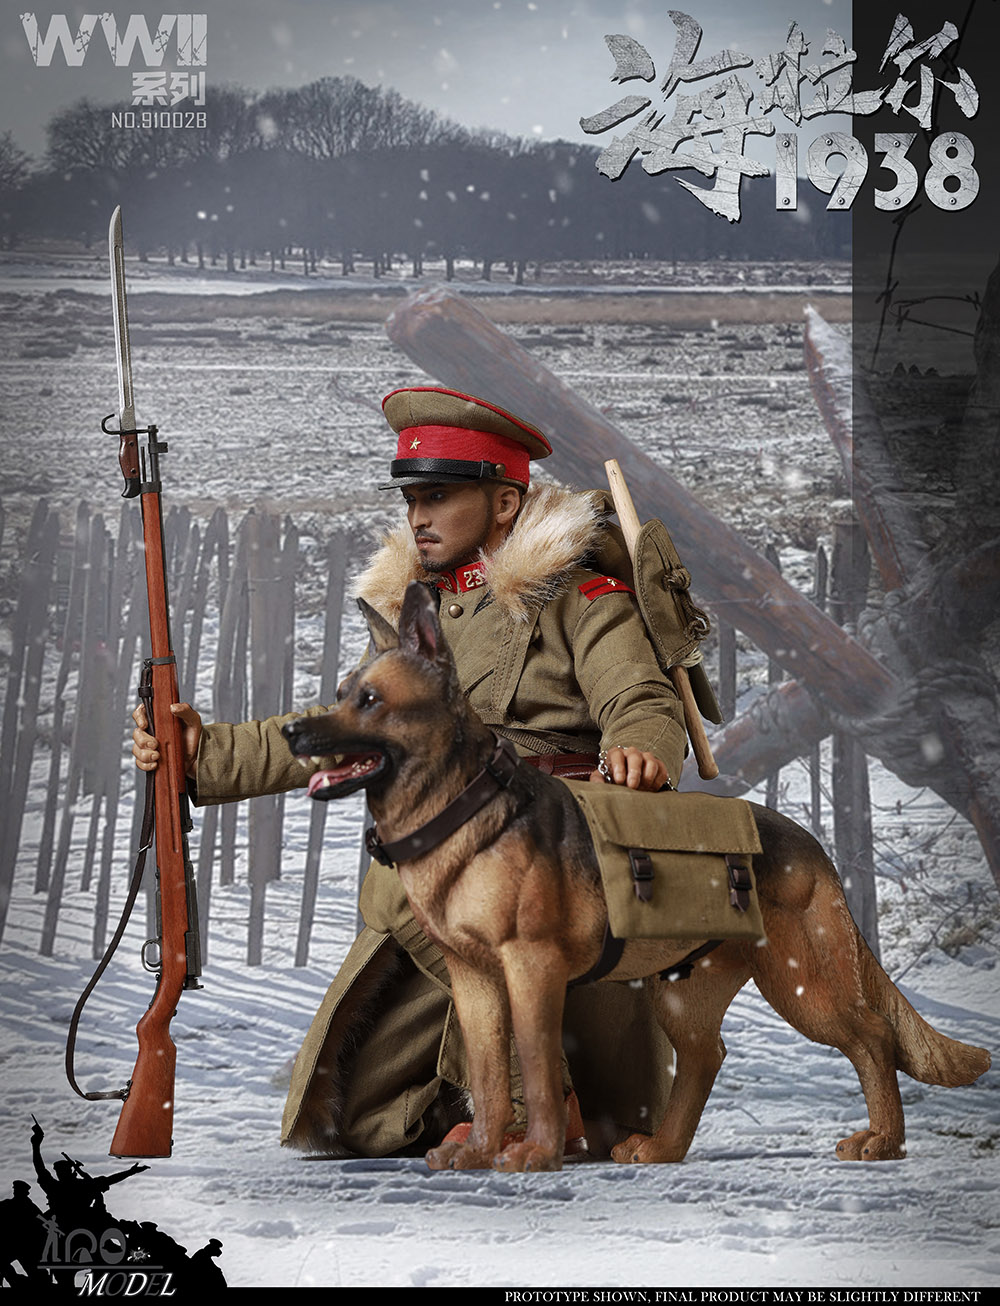 male - NEW PRODUCT: IQO Model: 1/6 WWII Series 1938 Hailar Scout (NO.91002A, B) 22114511